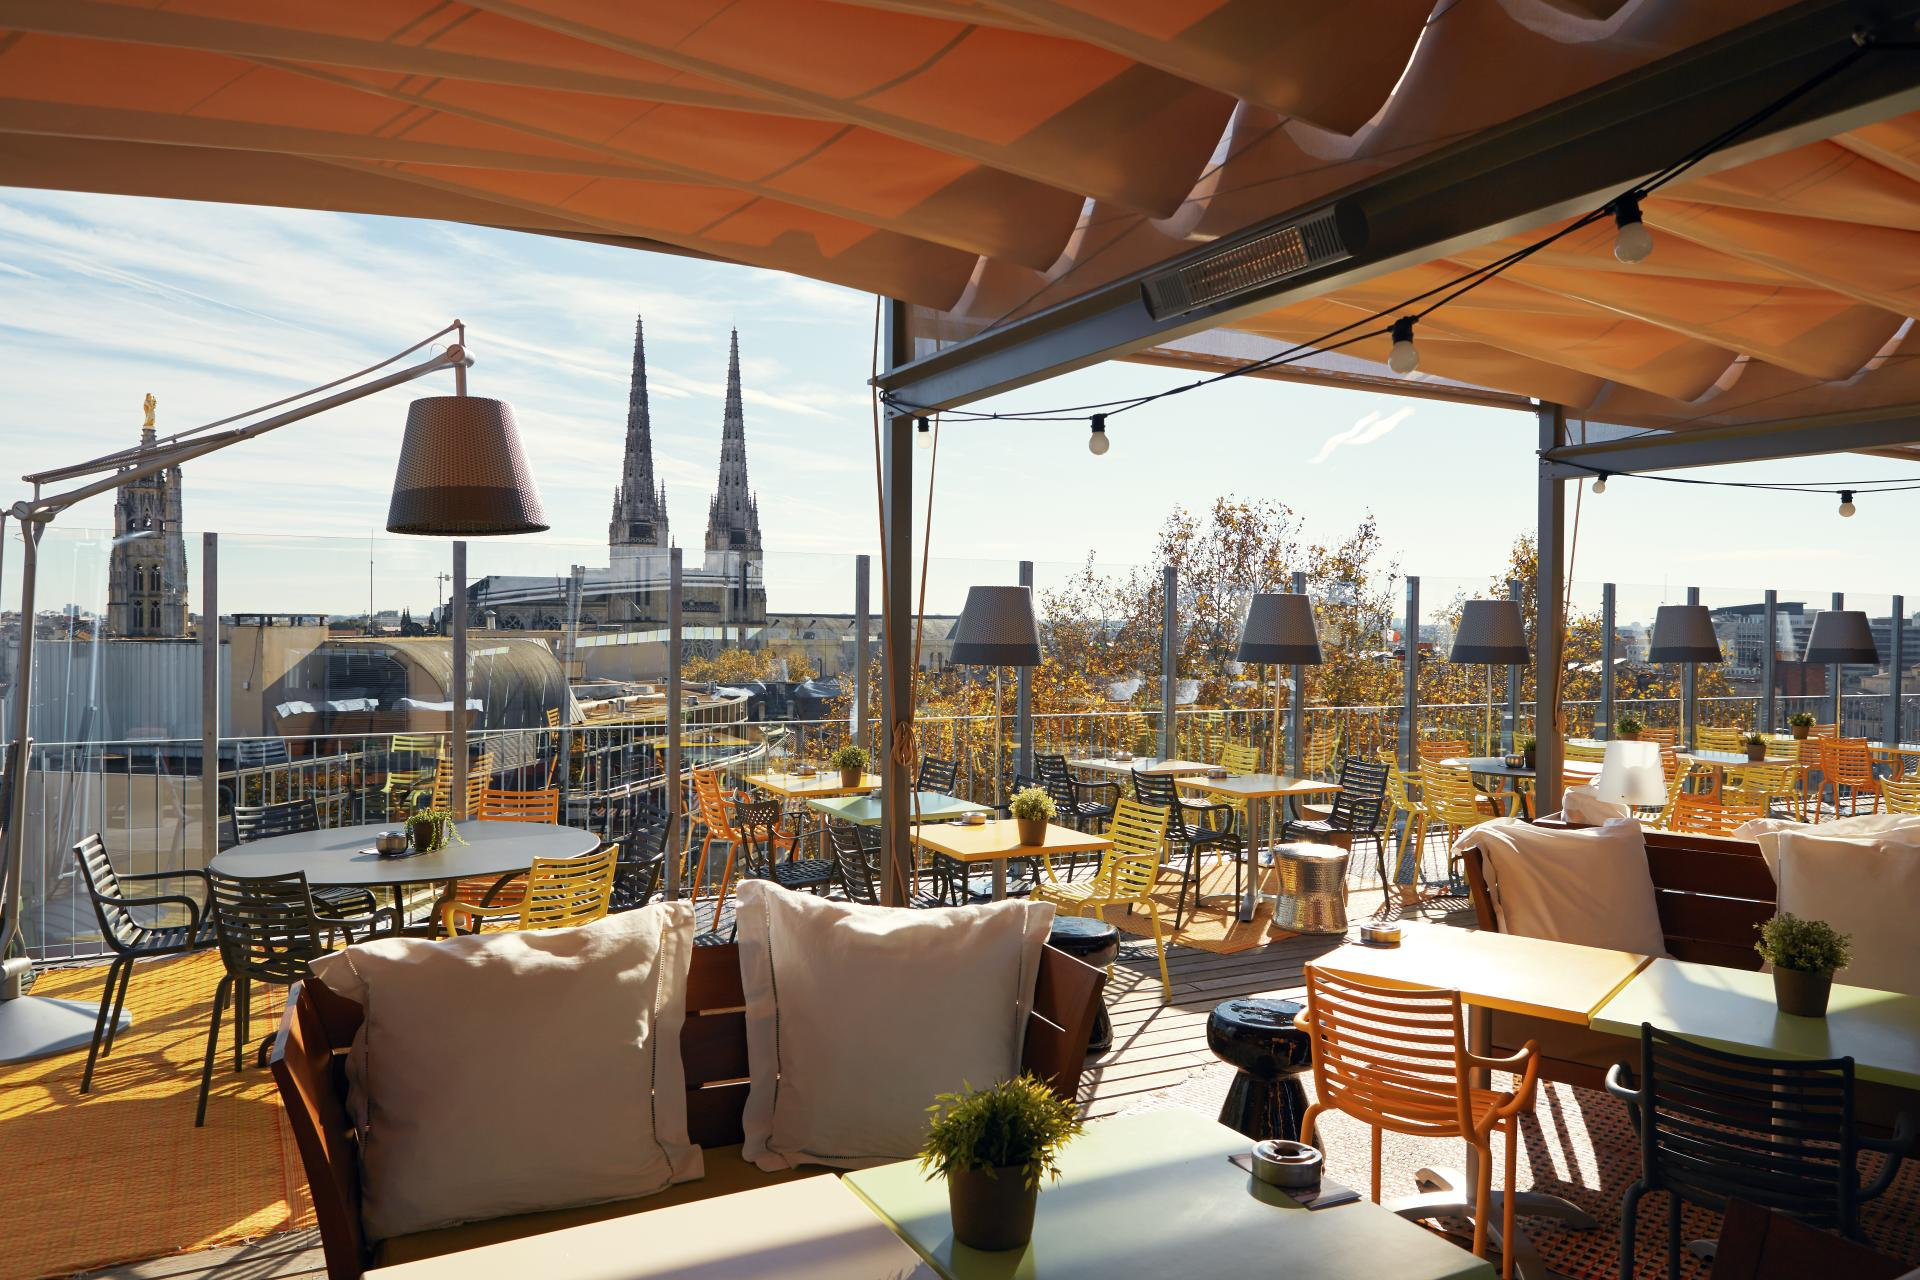 Toit Terrasse Bordeaux Bordeaux 24 Hours In The French Capital Of Wine With The Best